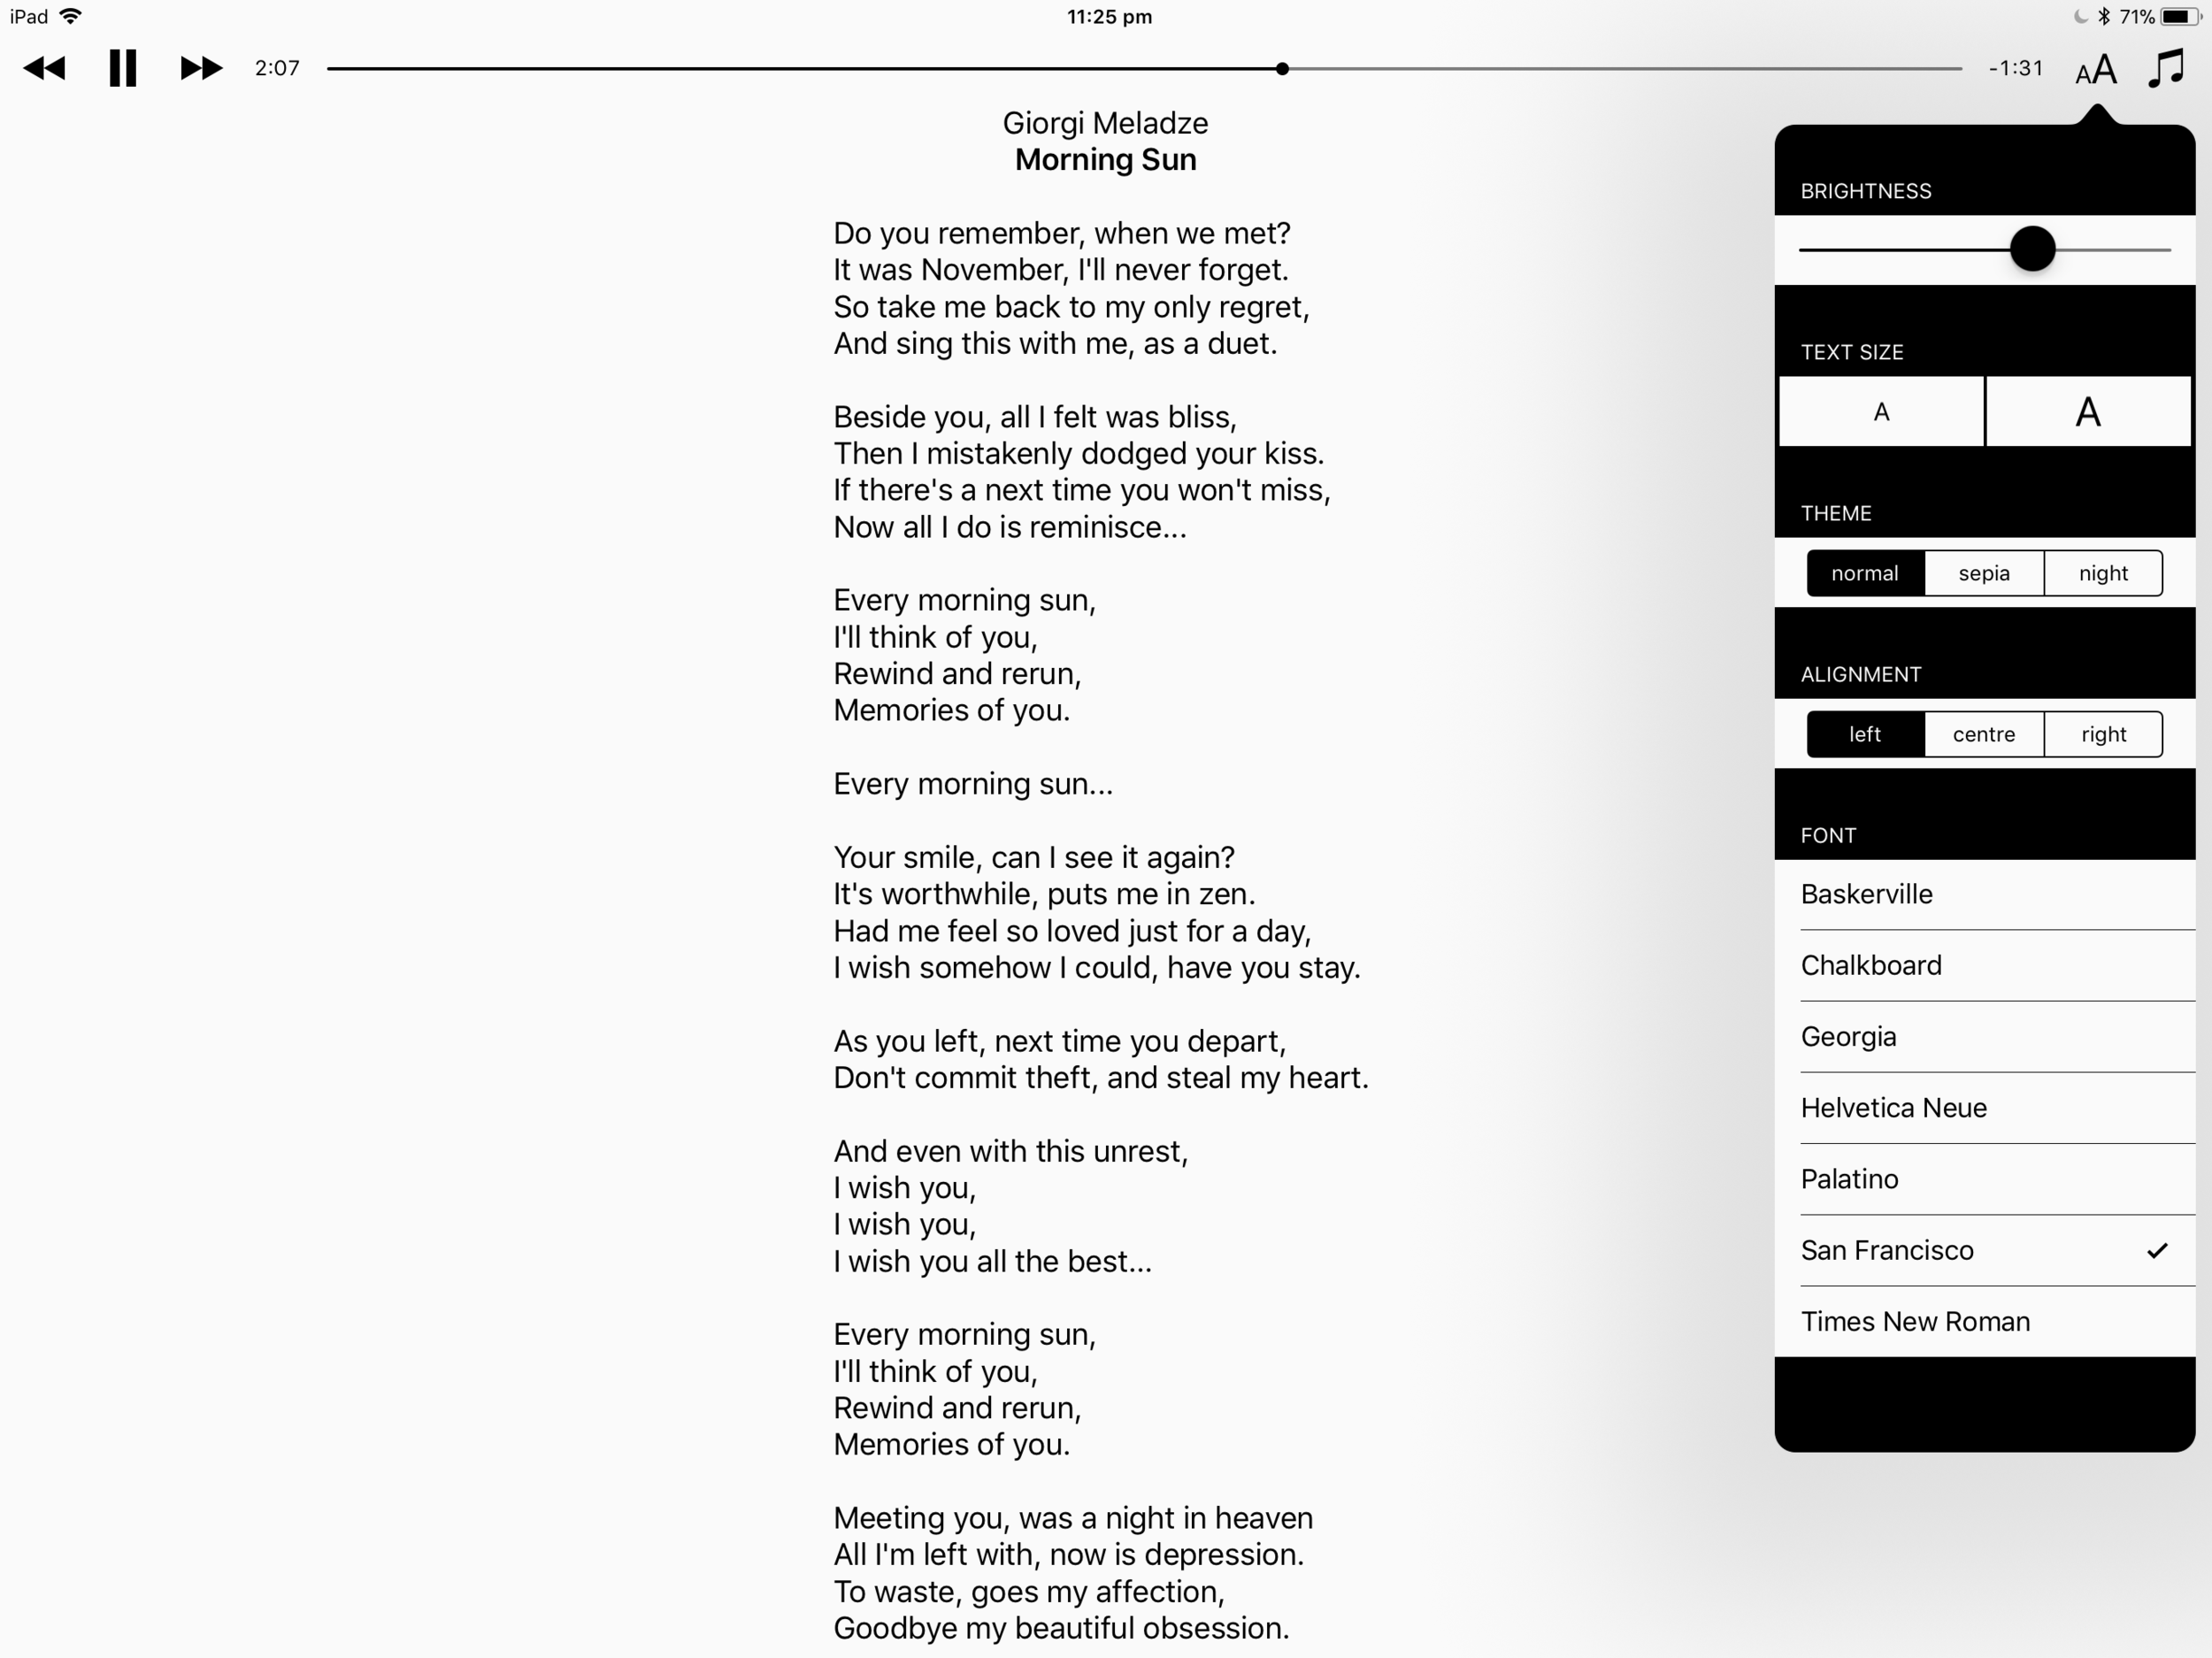 lyrics_view_ipad_screenshot_1.PNG